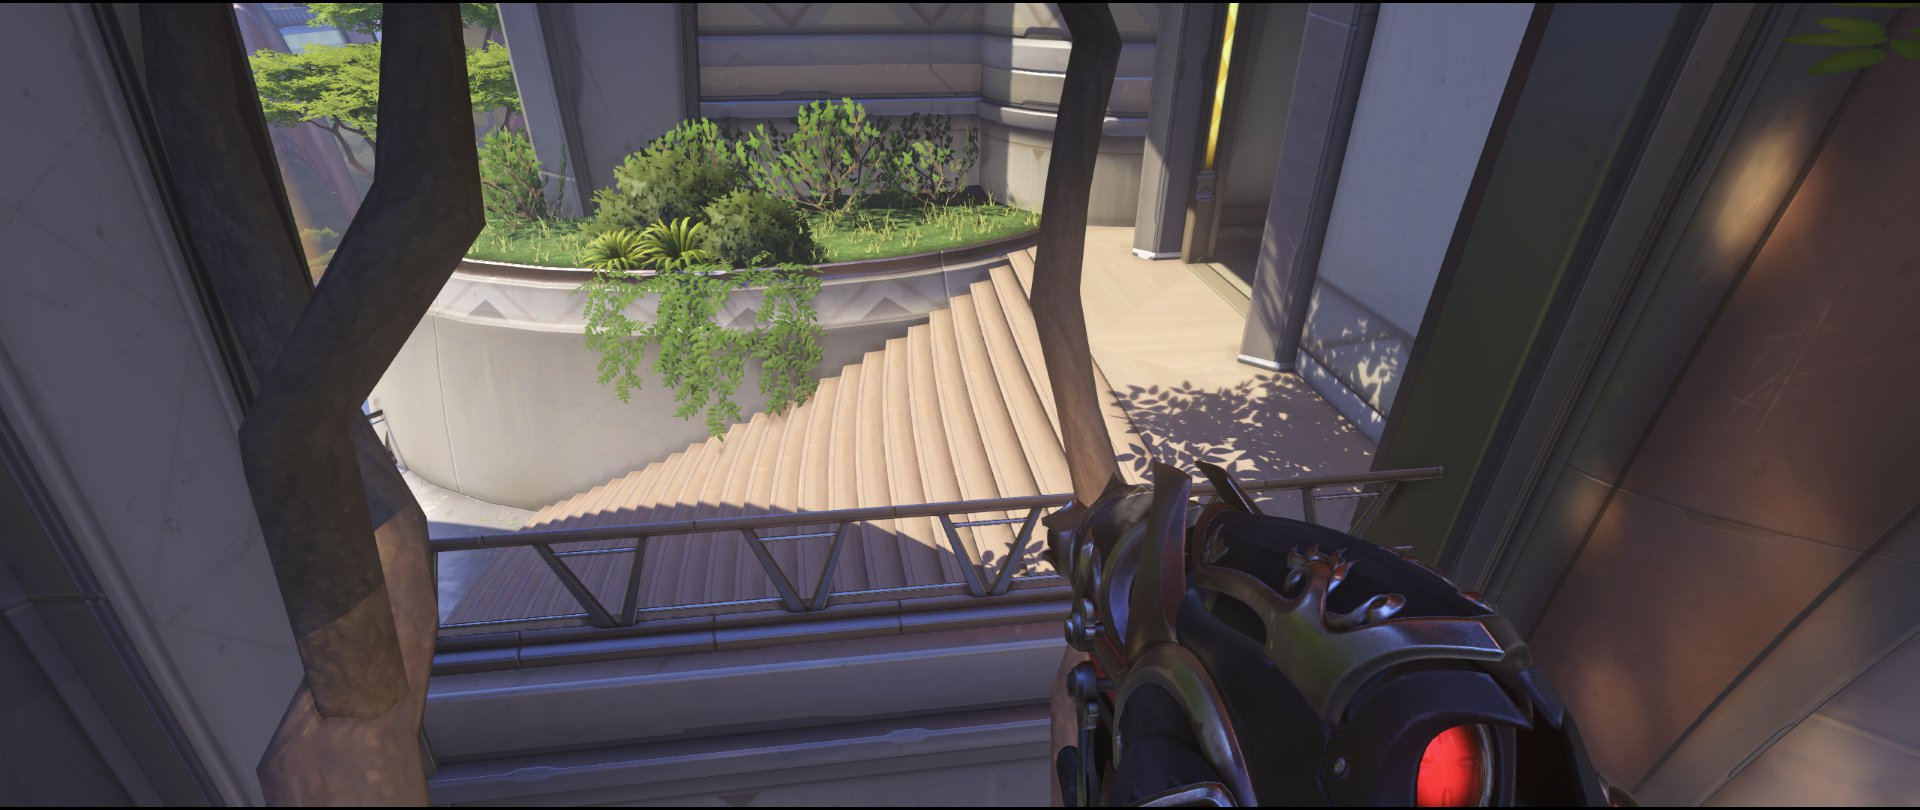 Escape spawn kill tree defense Widowmaker sniping spot Numbany Overwatch.jpg